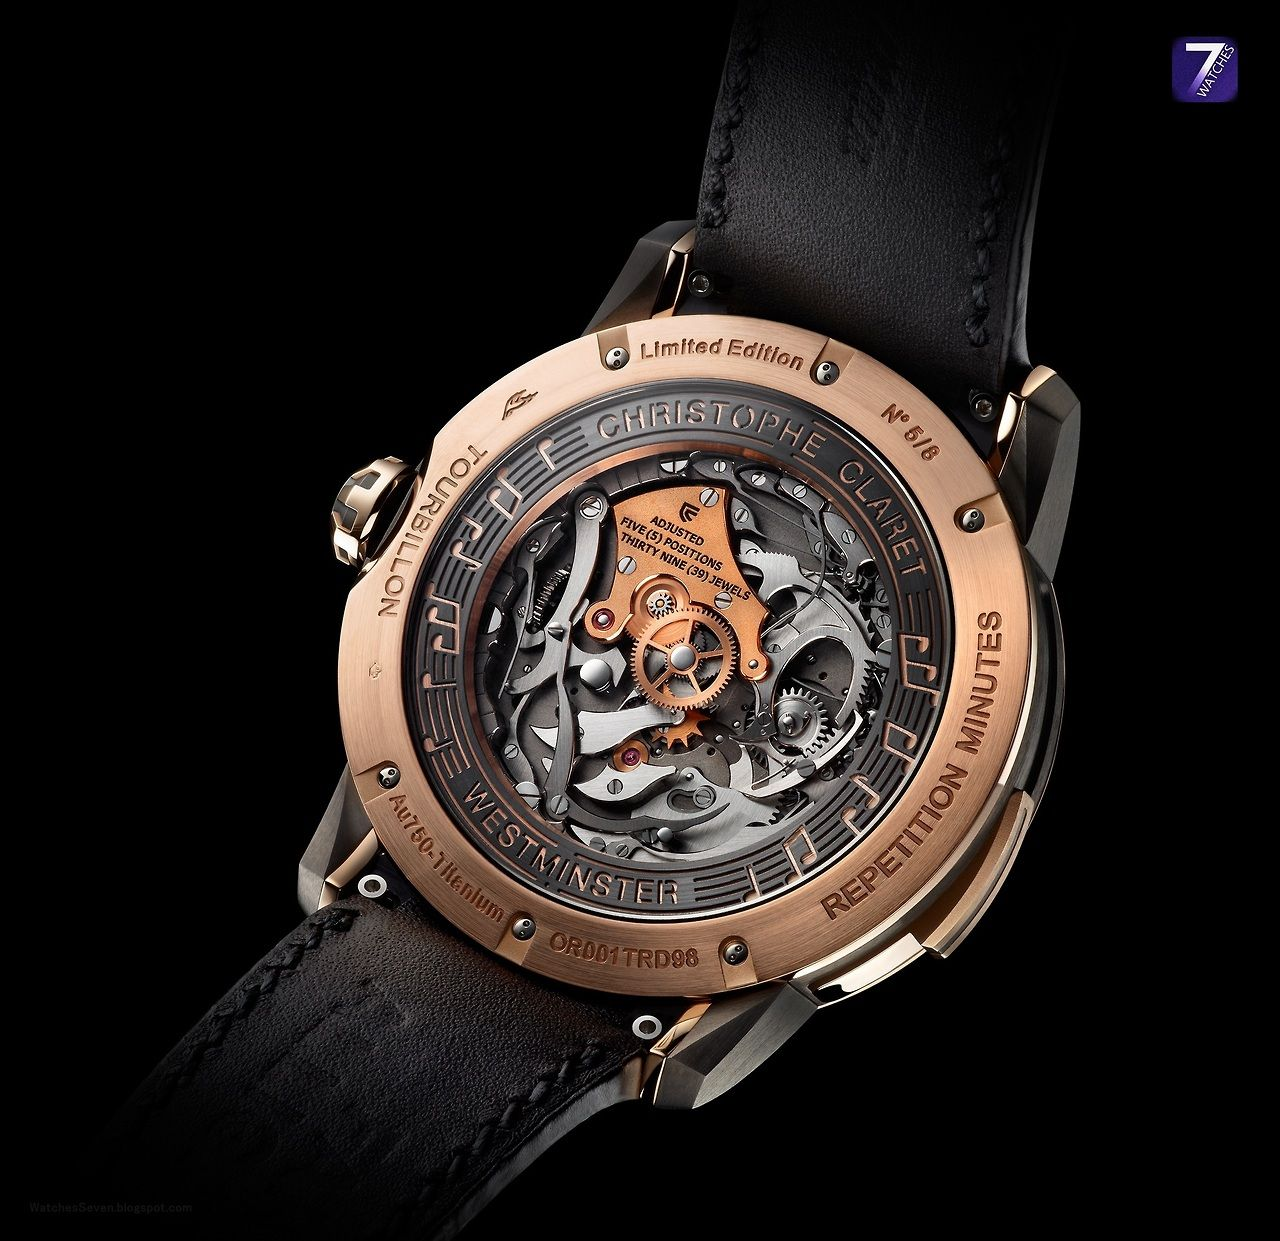 CHRISTOPHE CLARET u SOPRANO Flying Tourbillon Calibre TRD